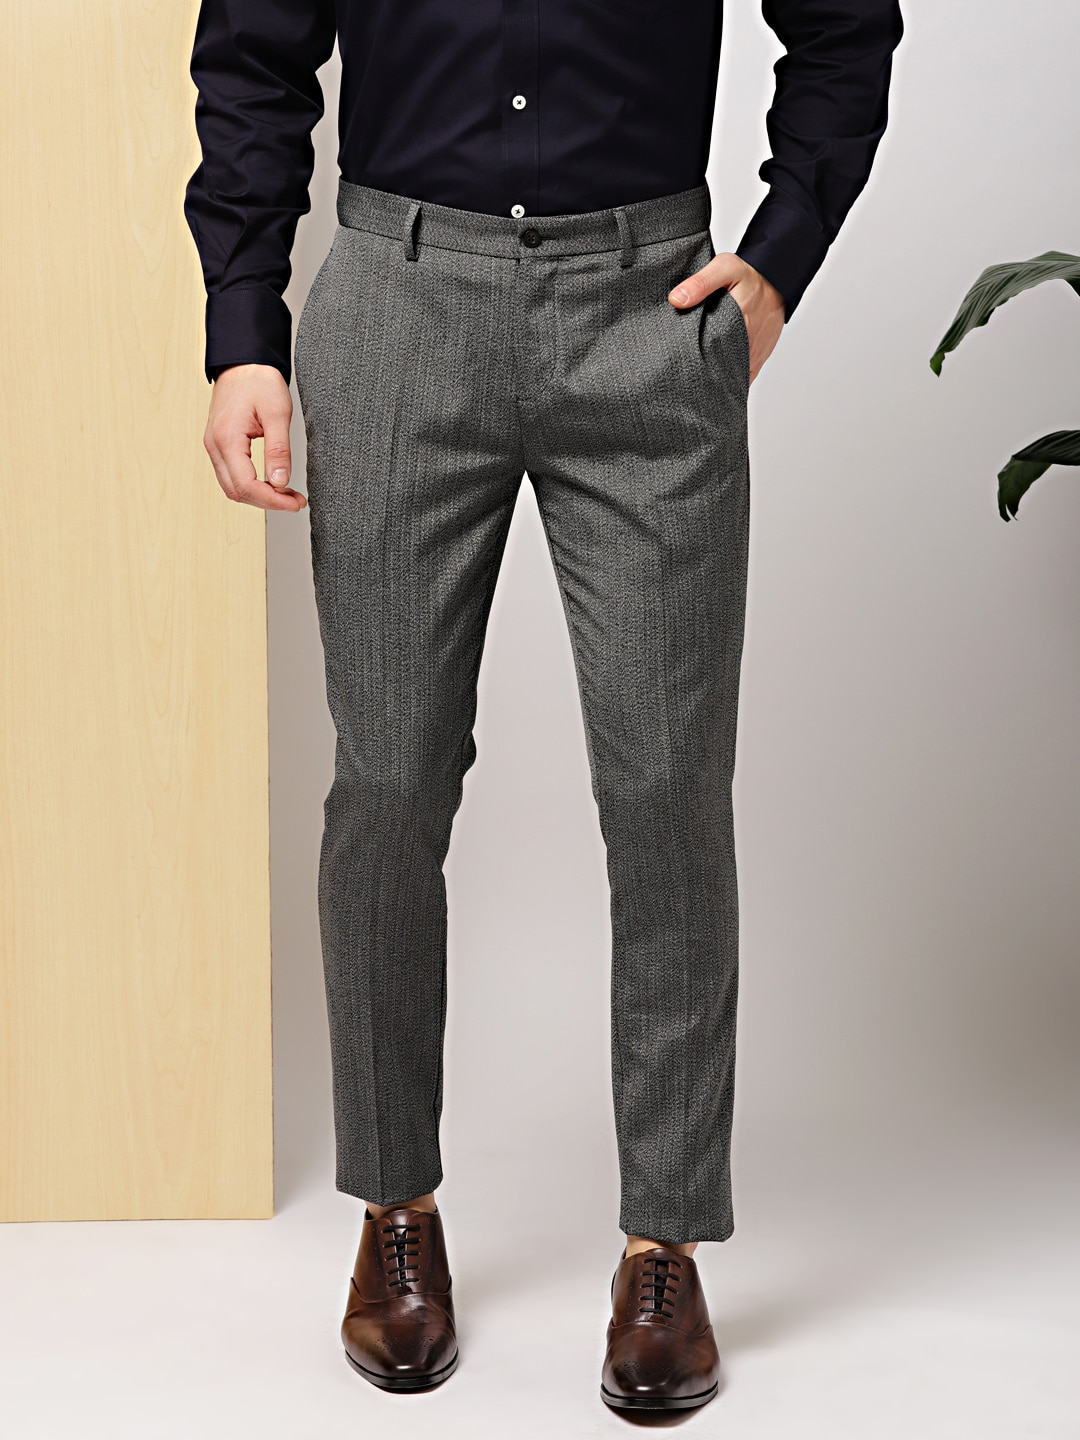 780bbb3d56f Invictus Formal Trousers - Buy Invictus Formal Trousers online in India